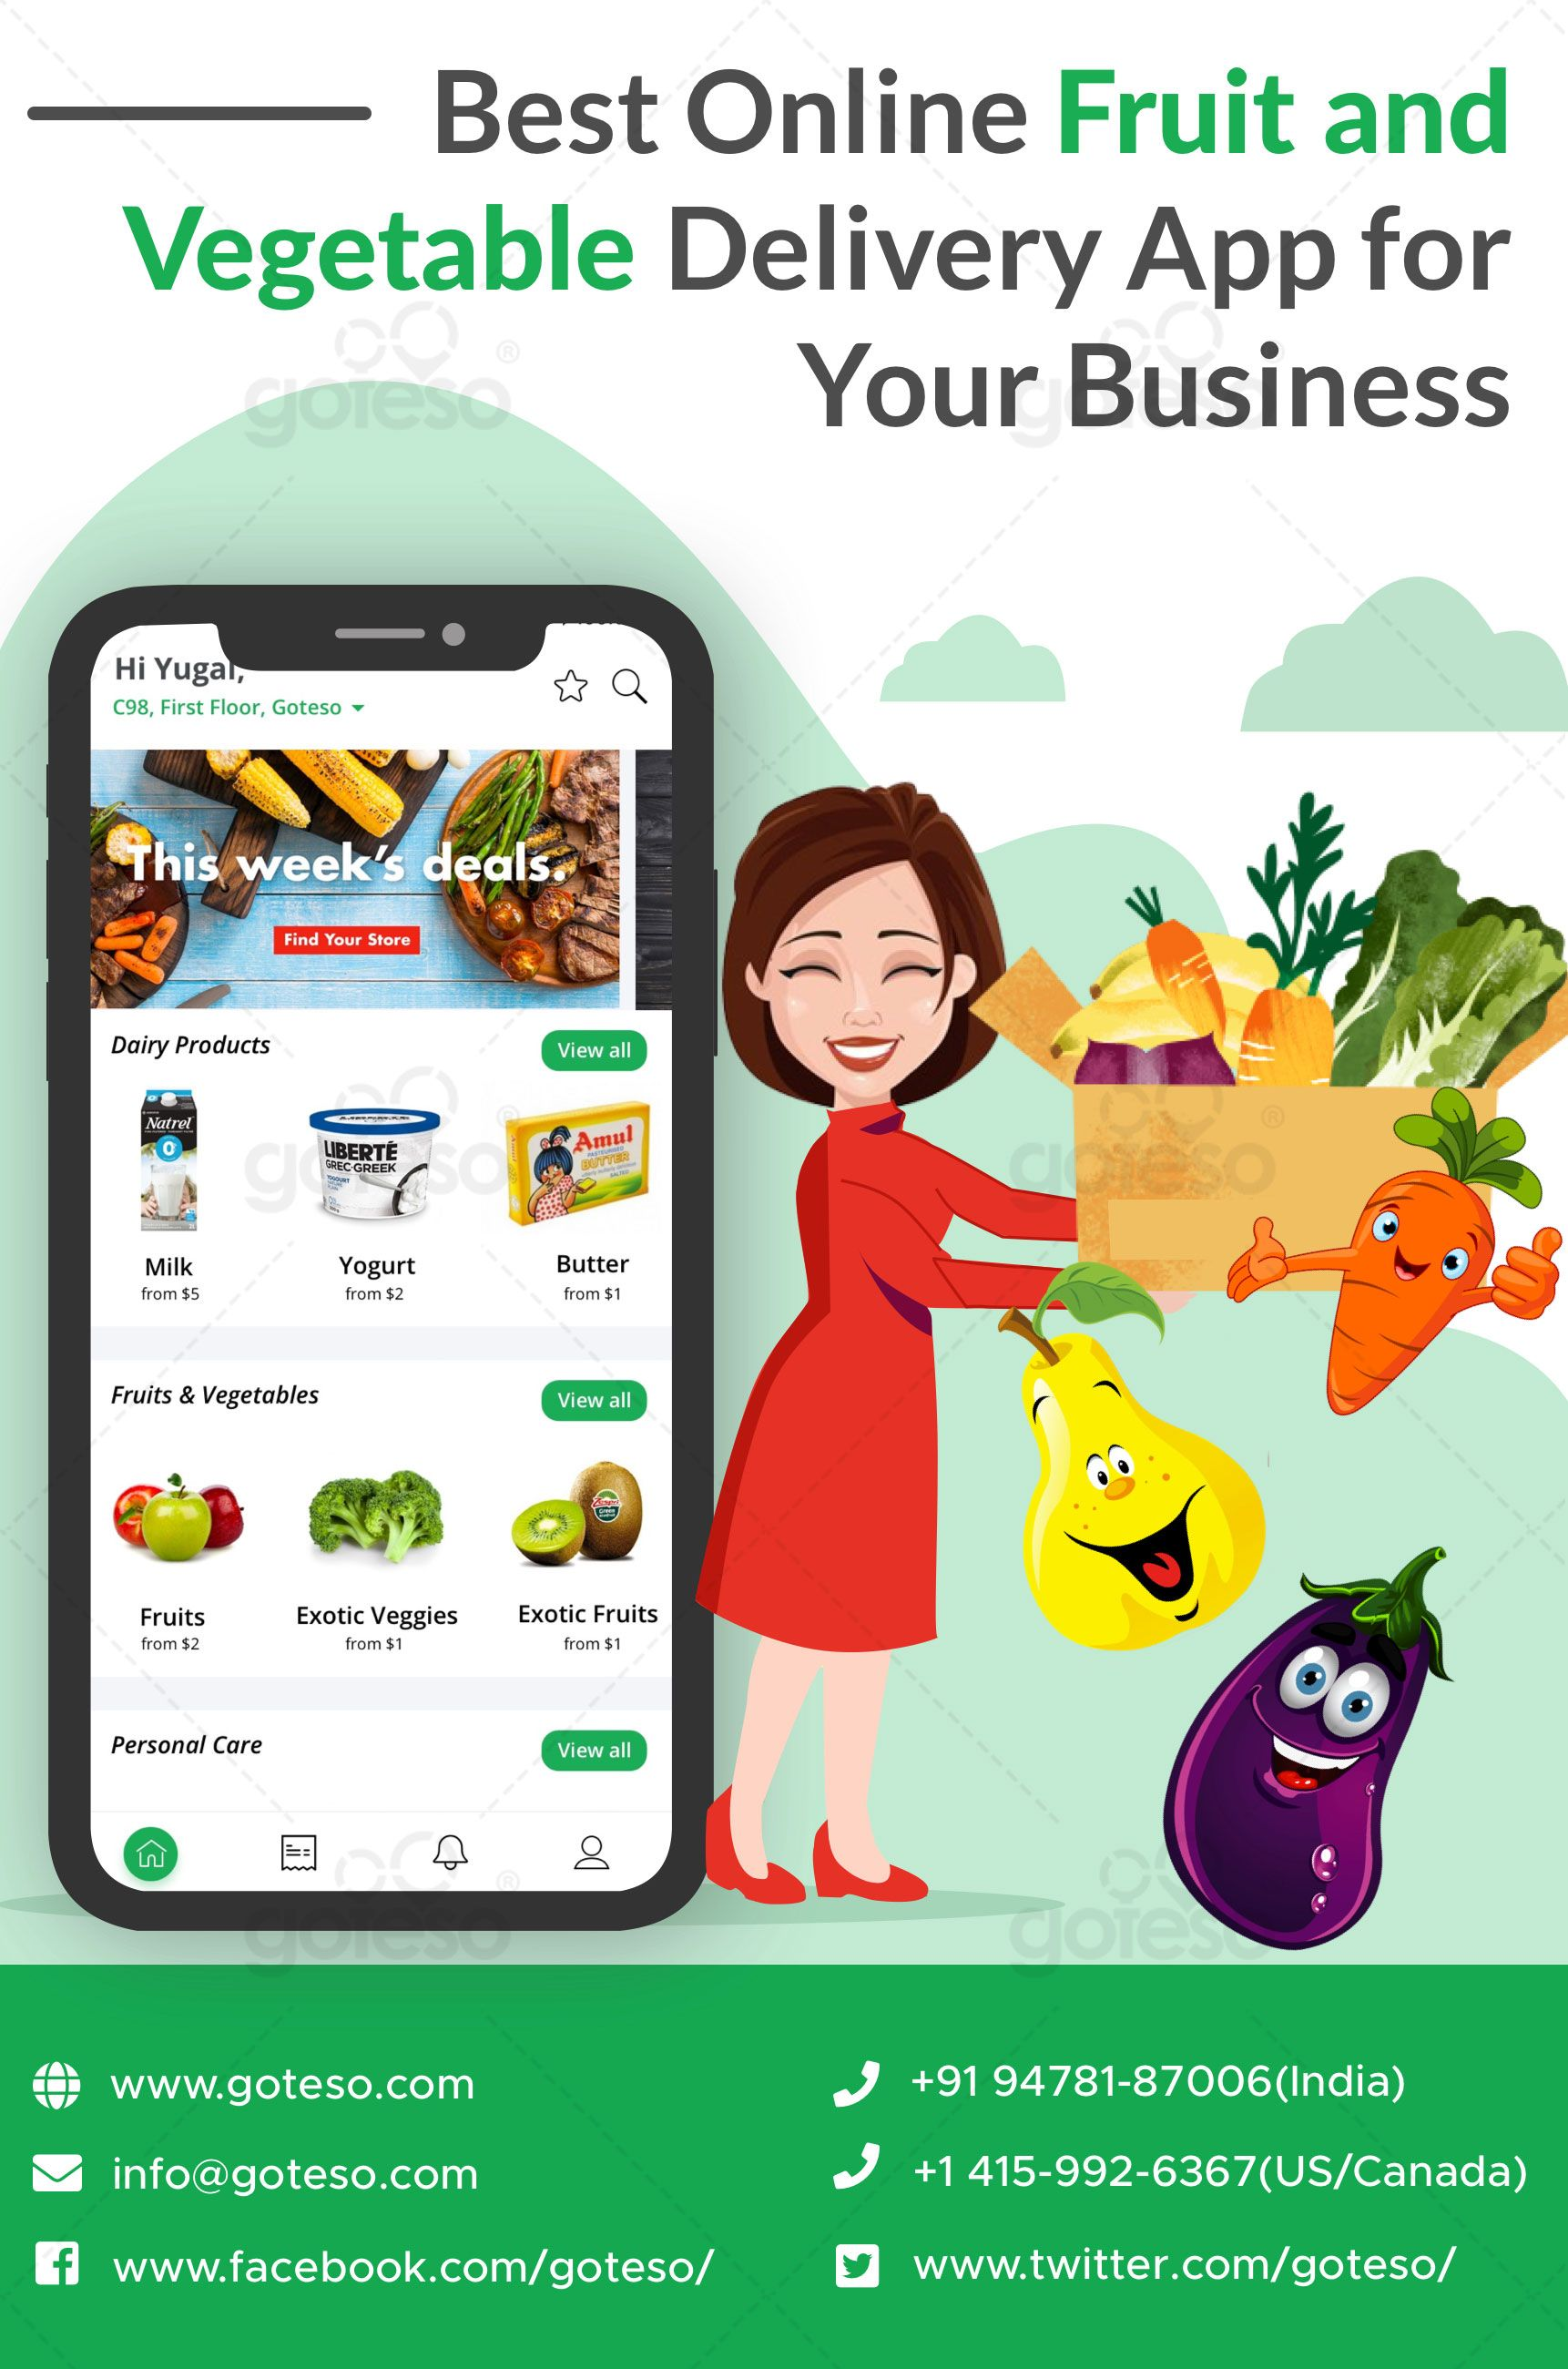 A reliable online fruit and vegetable delivery business